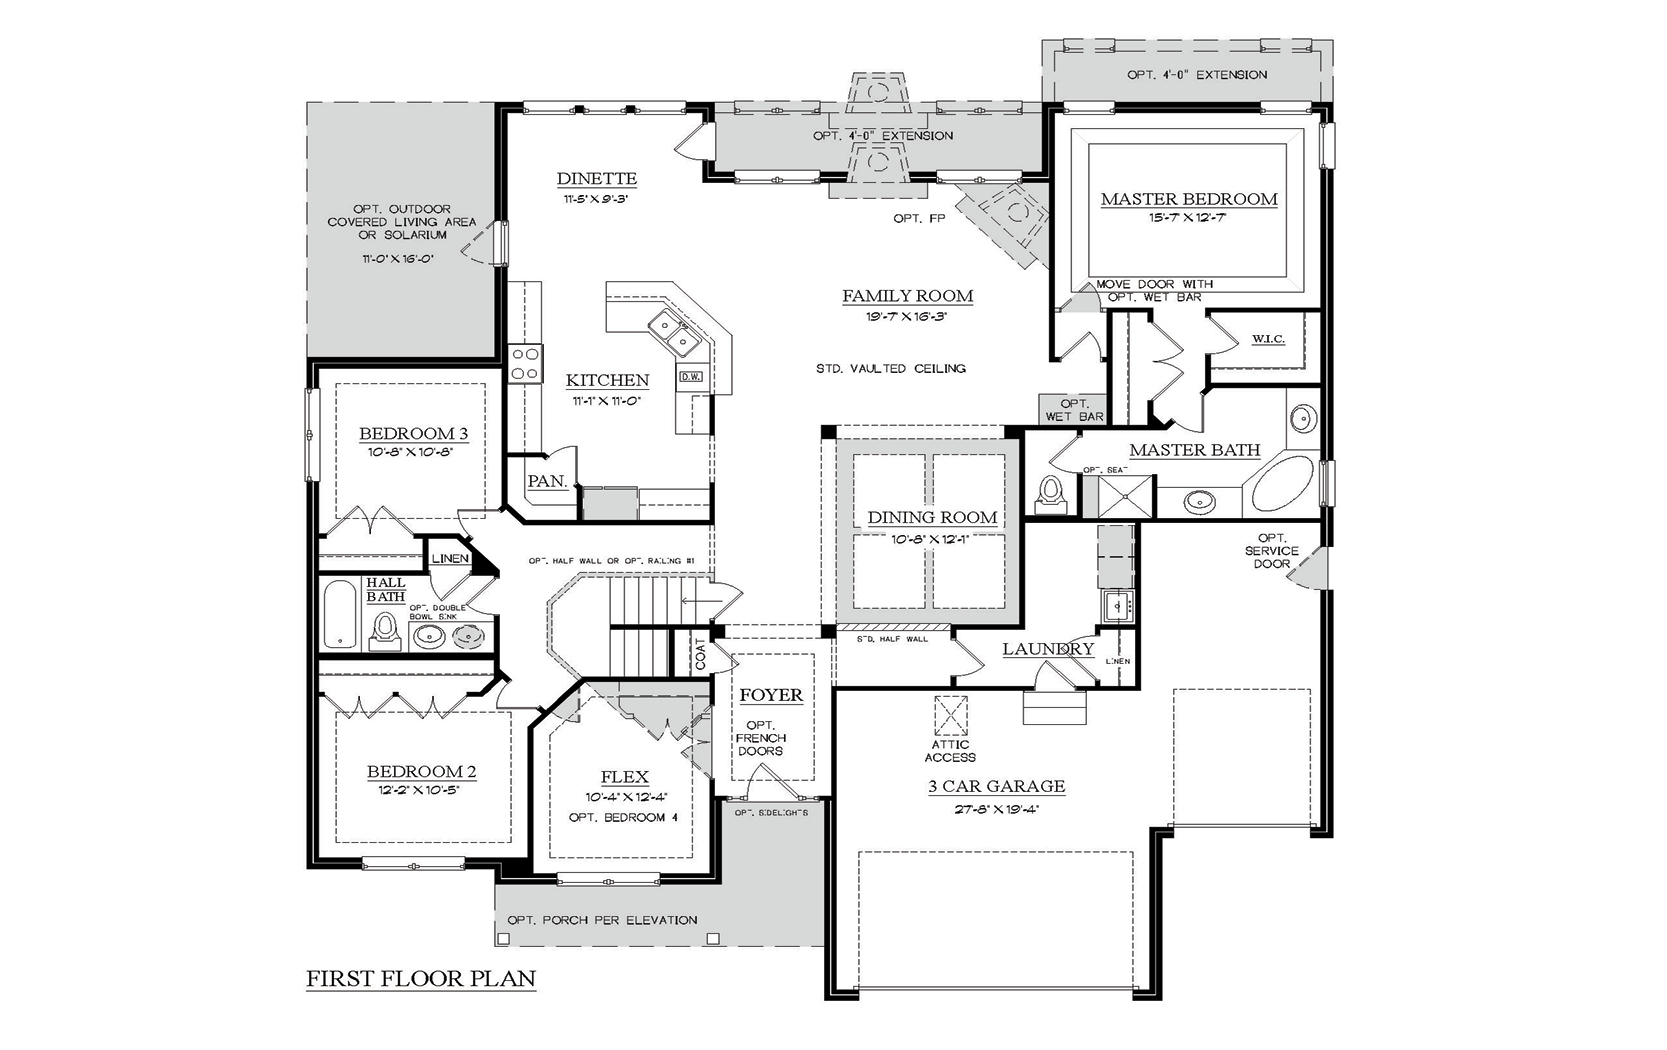 100 brighton homes floor plans 28 images 100 brighton for Brighton homes home designs